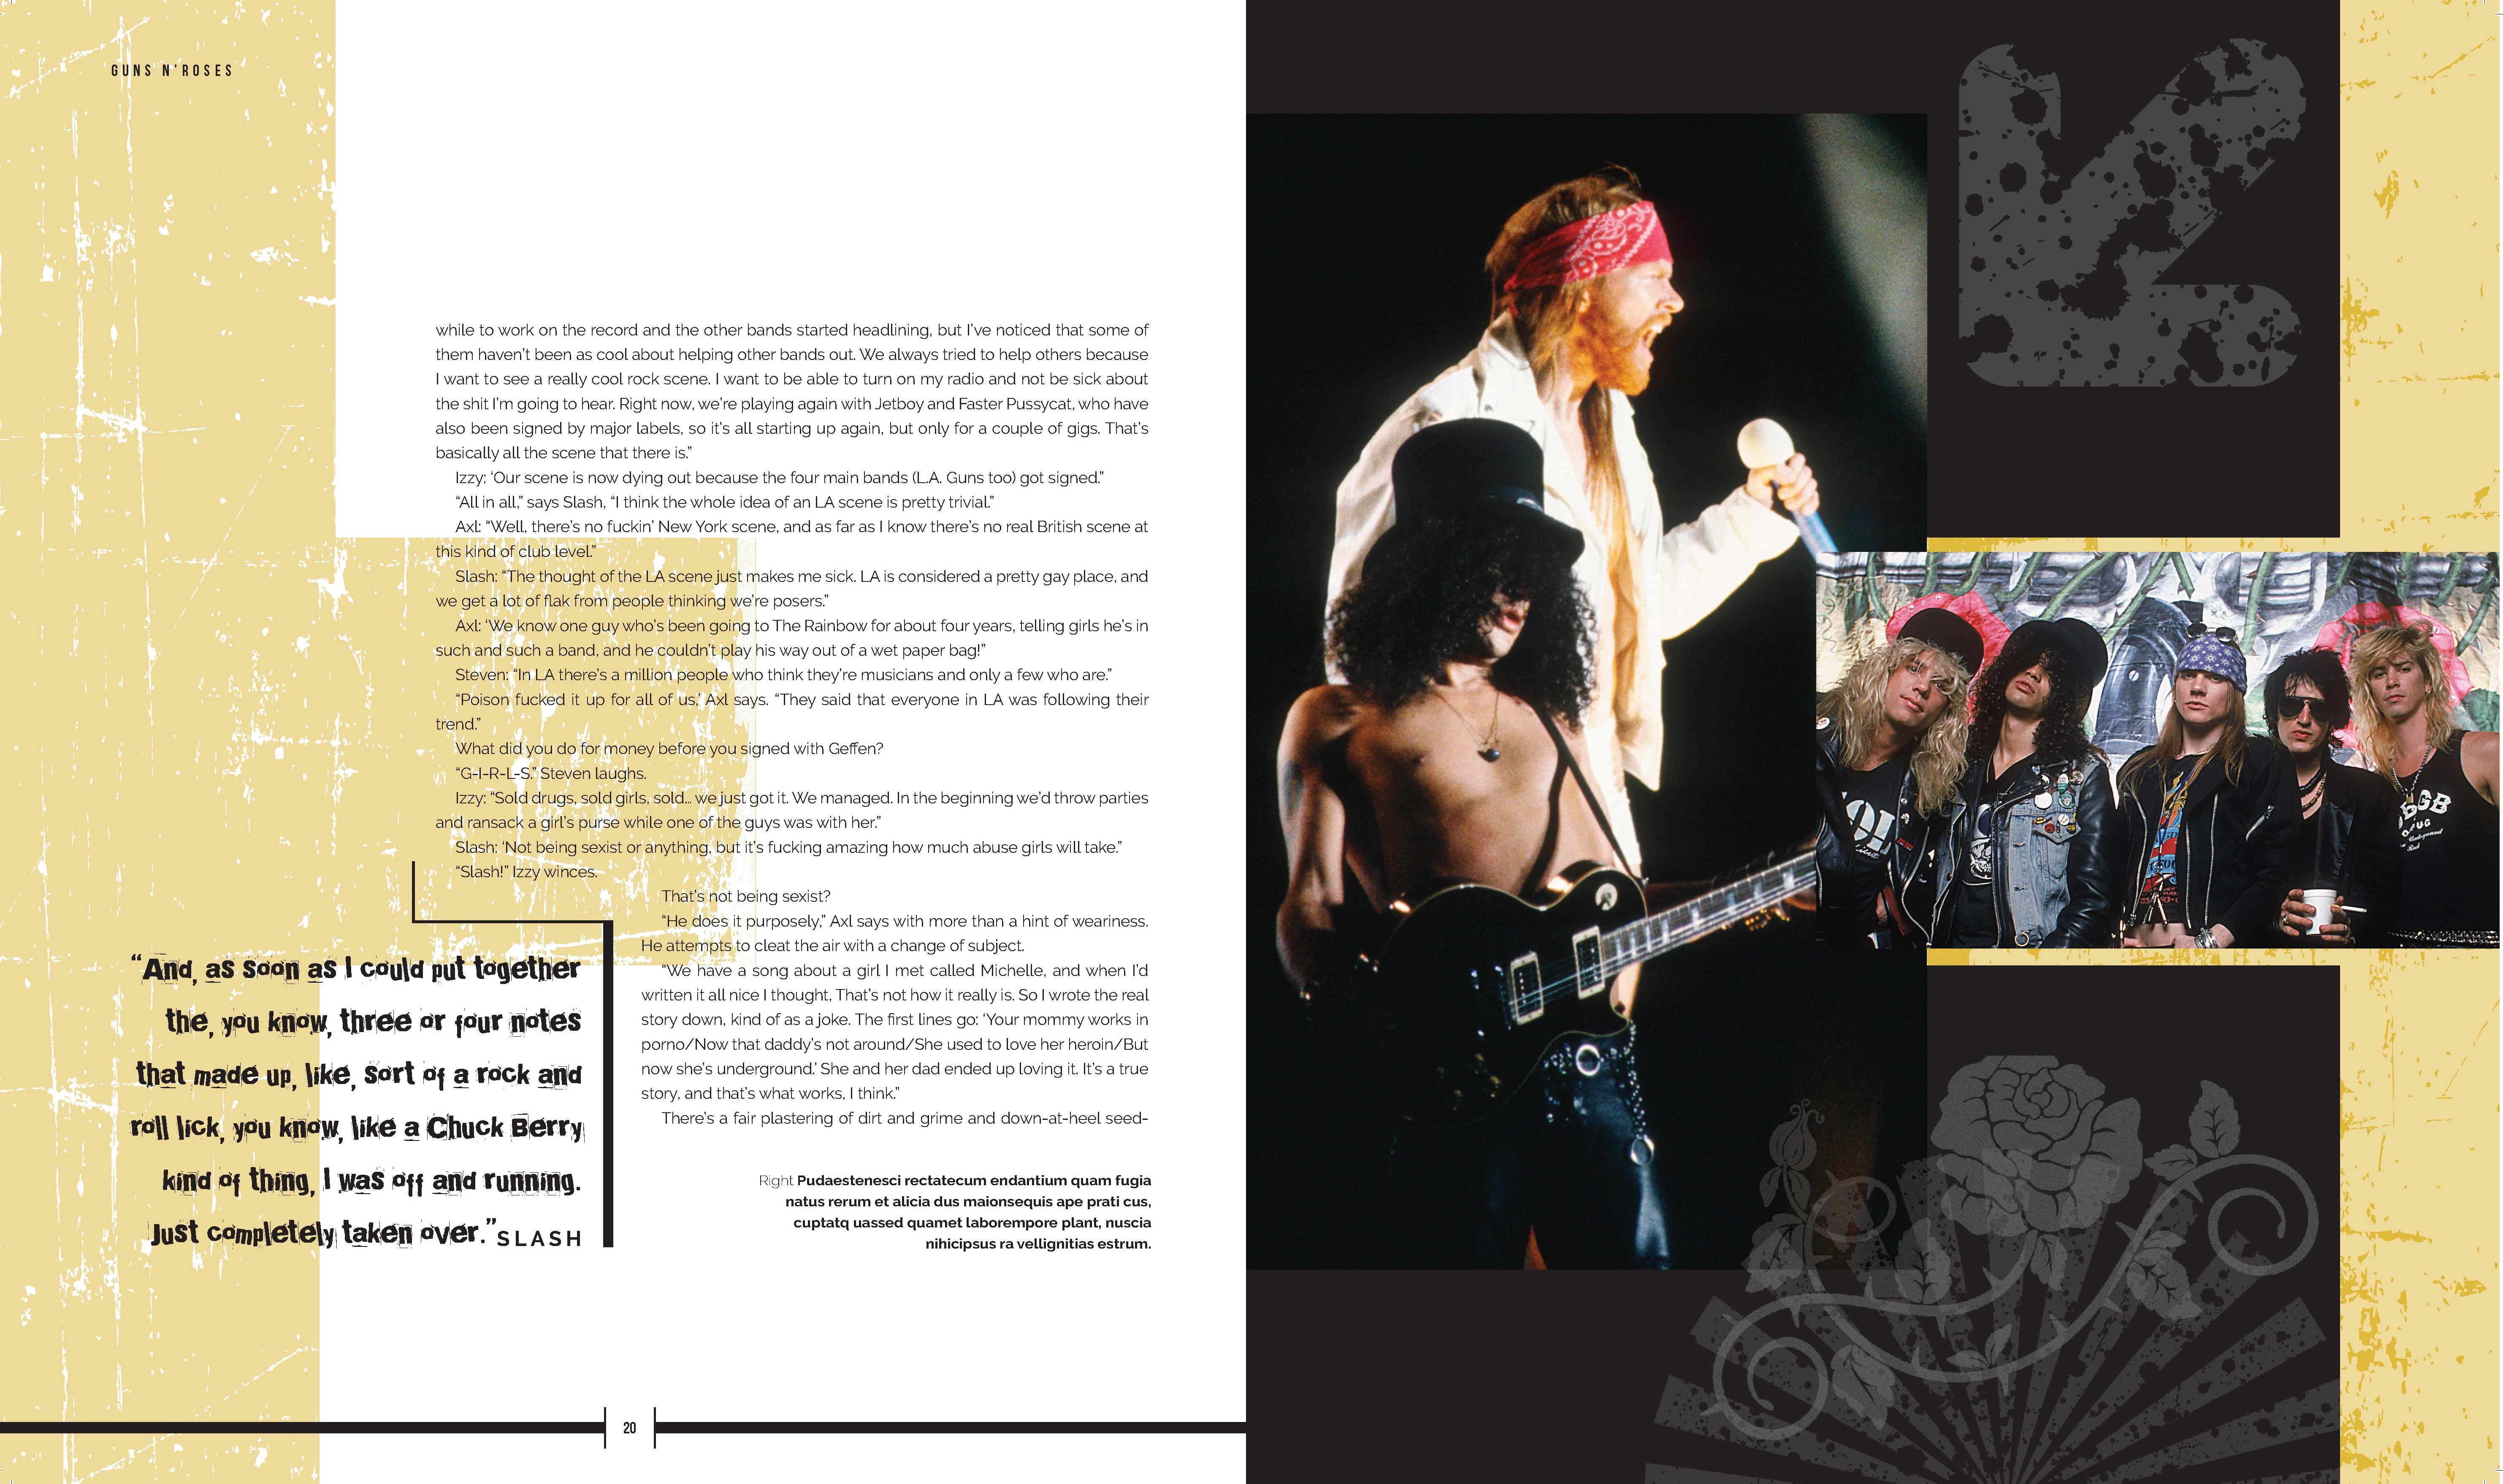 Guns N' Roses The Life and Times of a Rock 'N' Roll Band